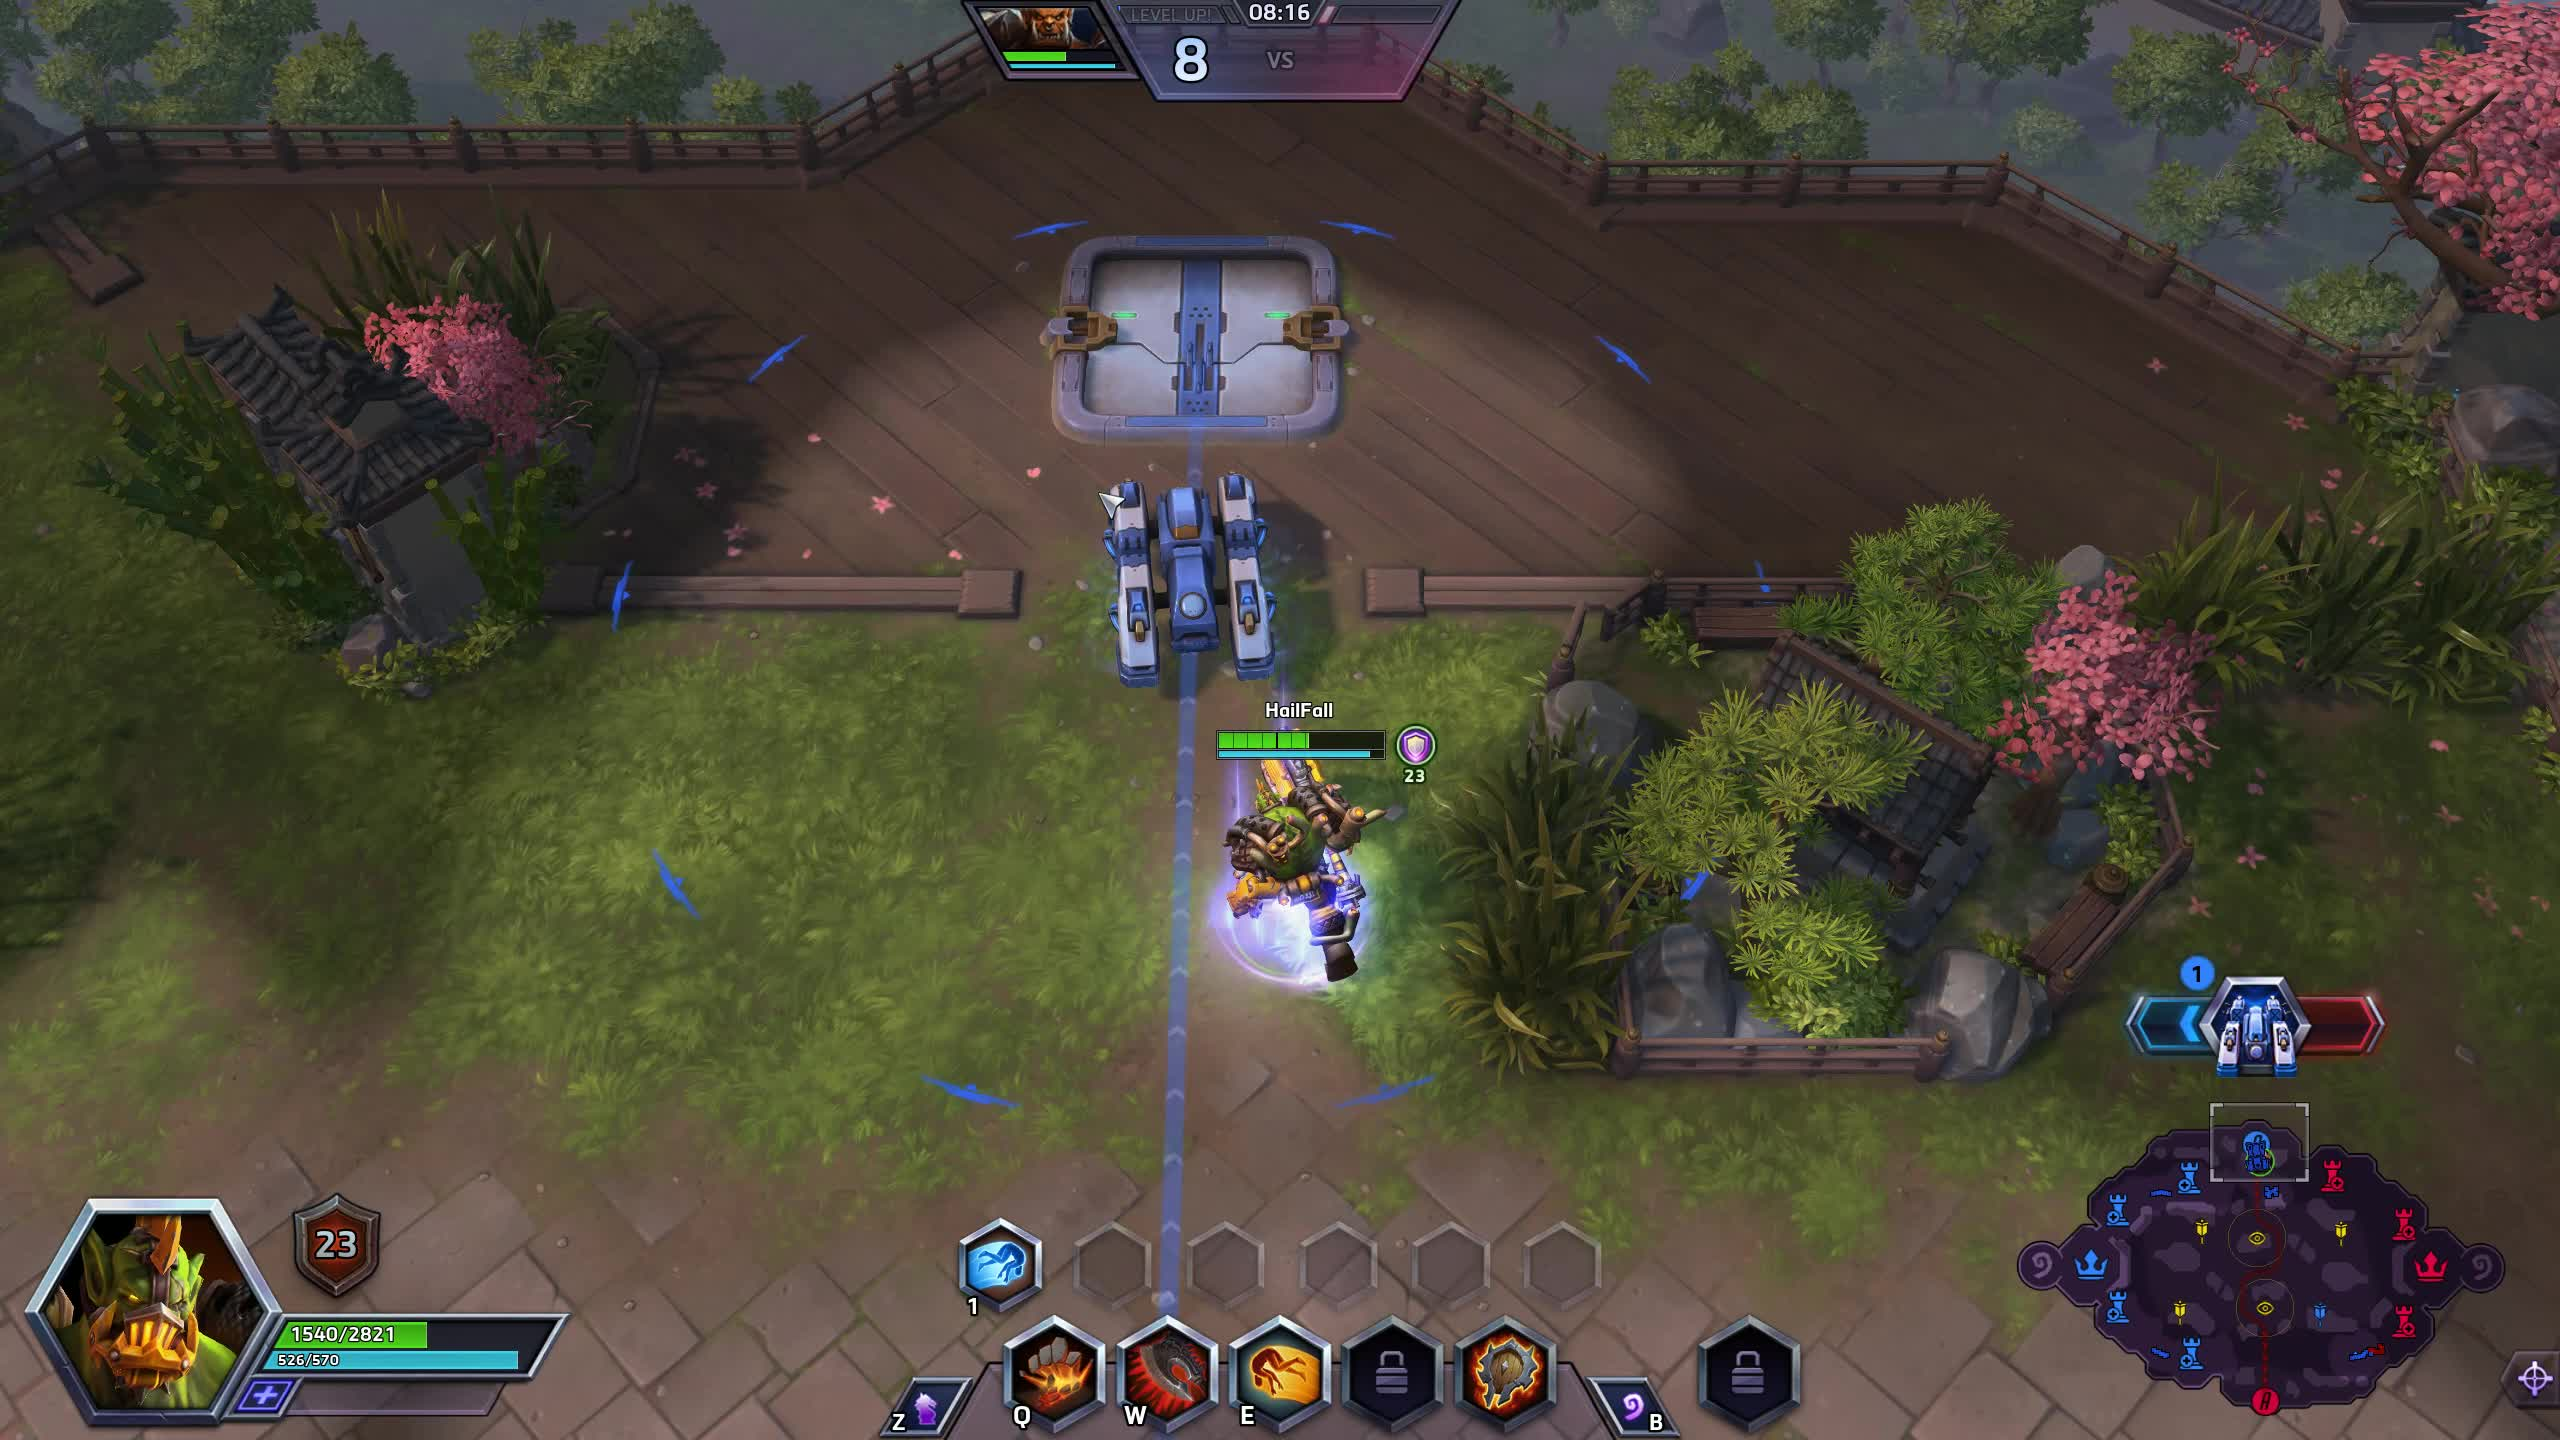 heroesofthestorm, Heroes of the Storm 2019.04.01 - 11.25.53.02.DVR GIFs